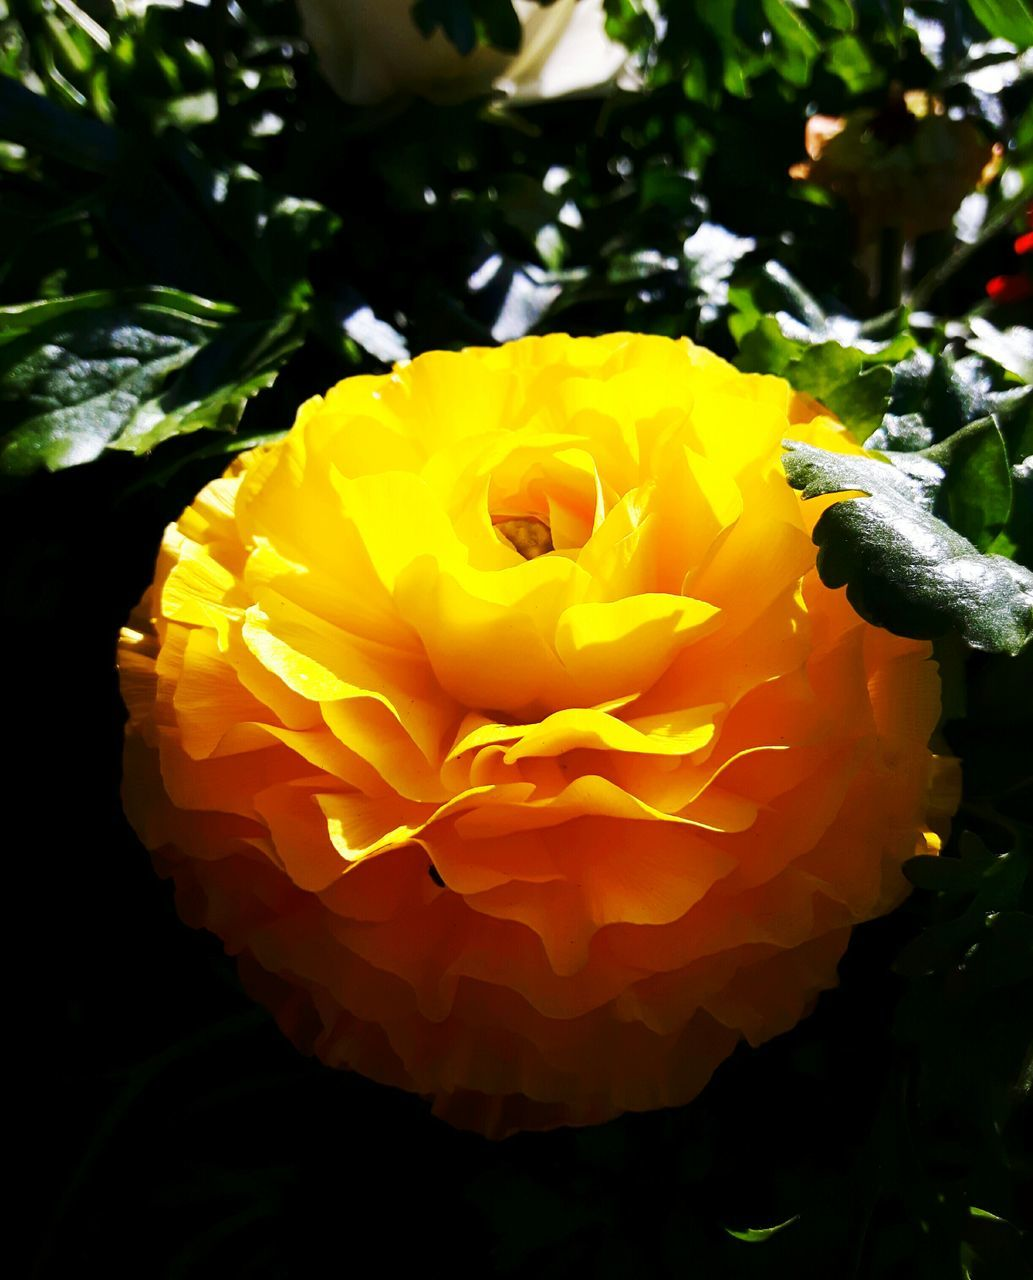 flower, petal, nature, beauty in nature, fragility, freshness, flower head, rose - flower, yellow, plant, no people, growth, close-up, blooming, outdoors, day